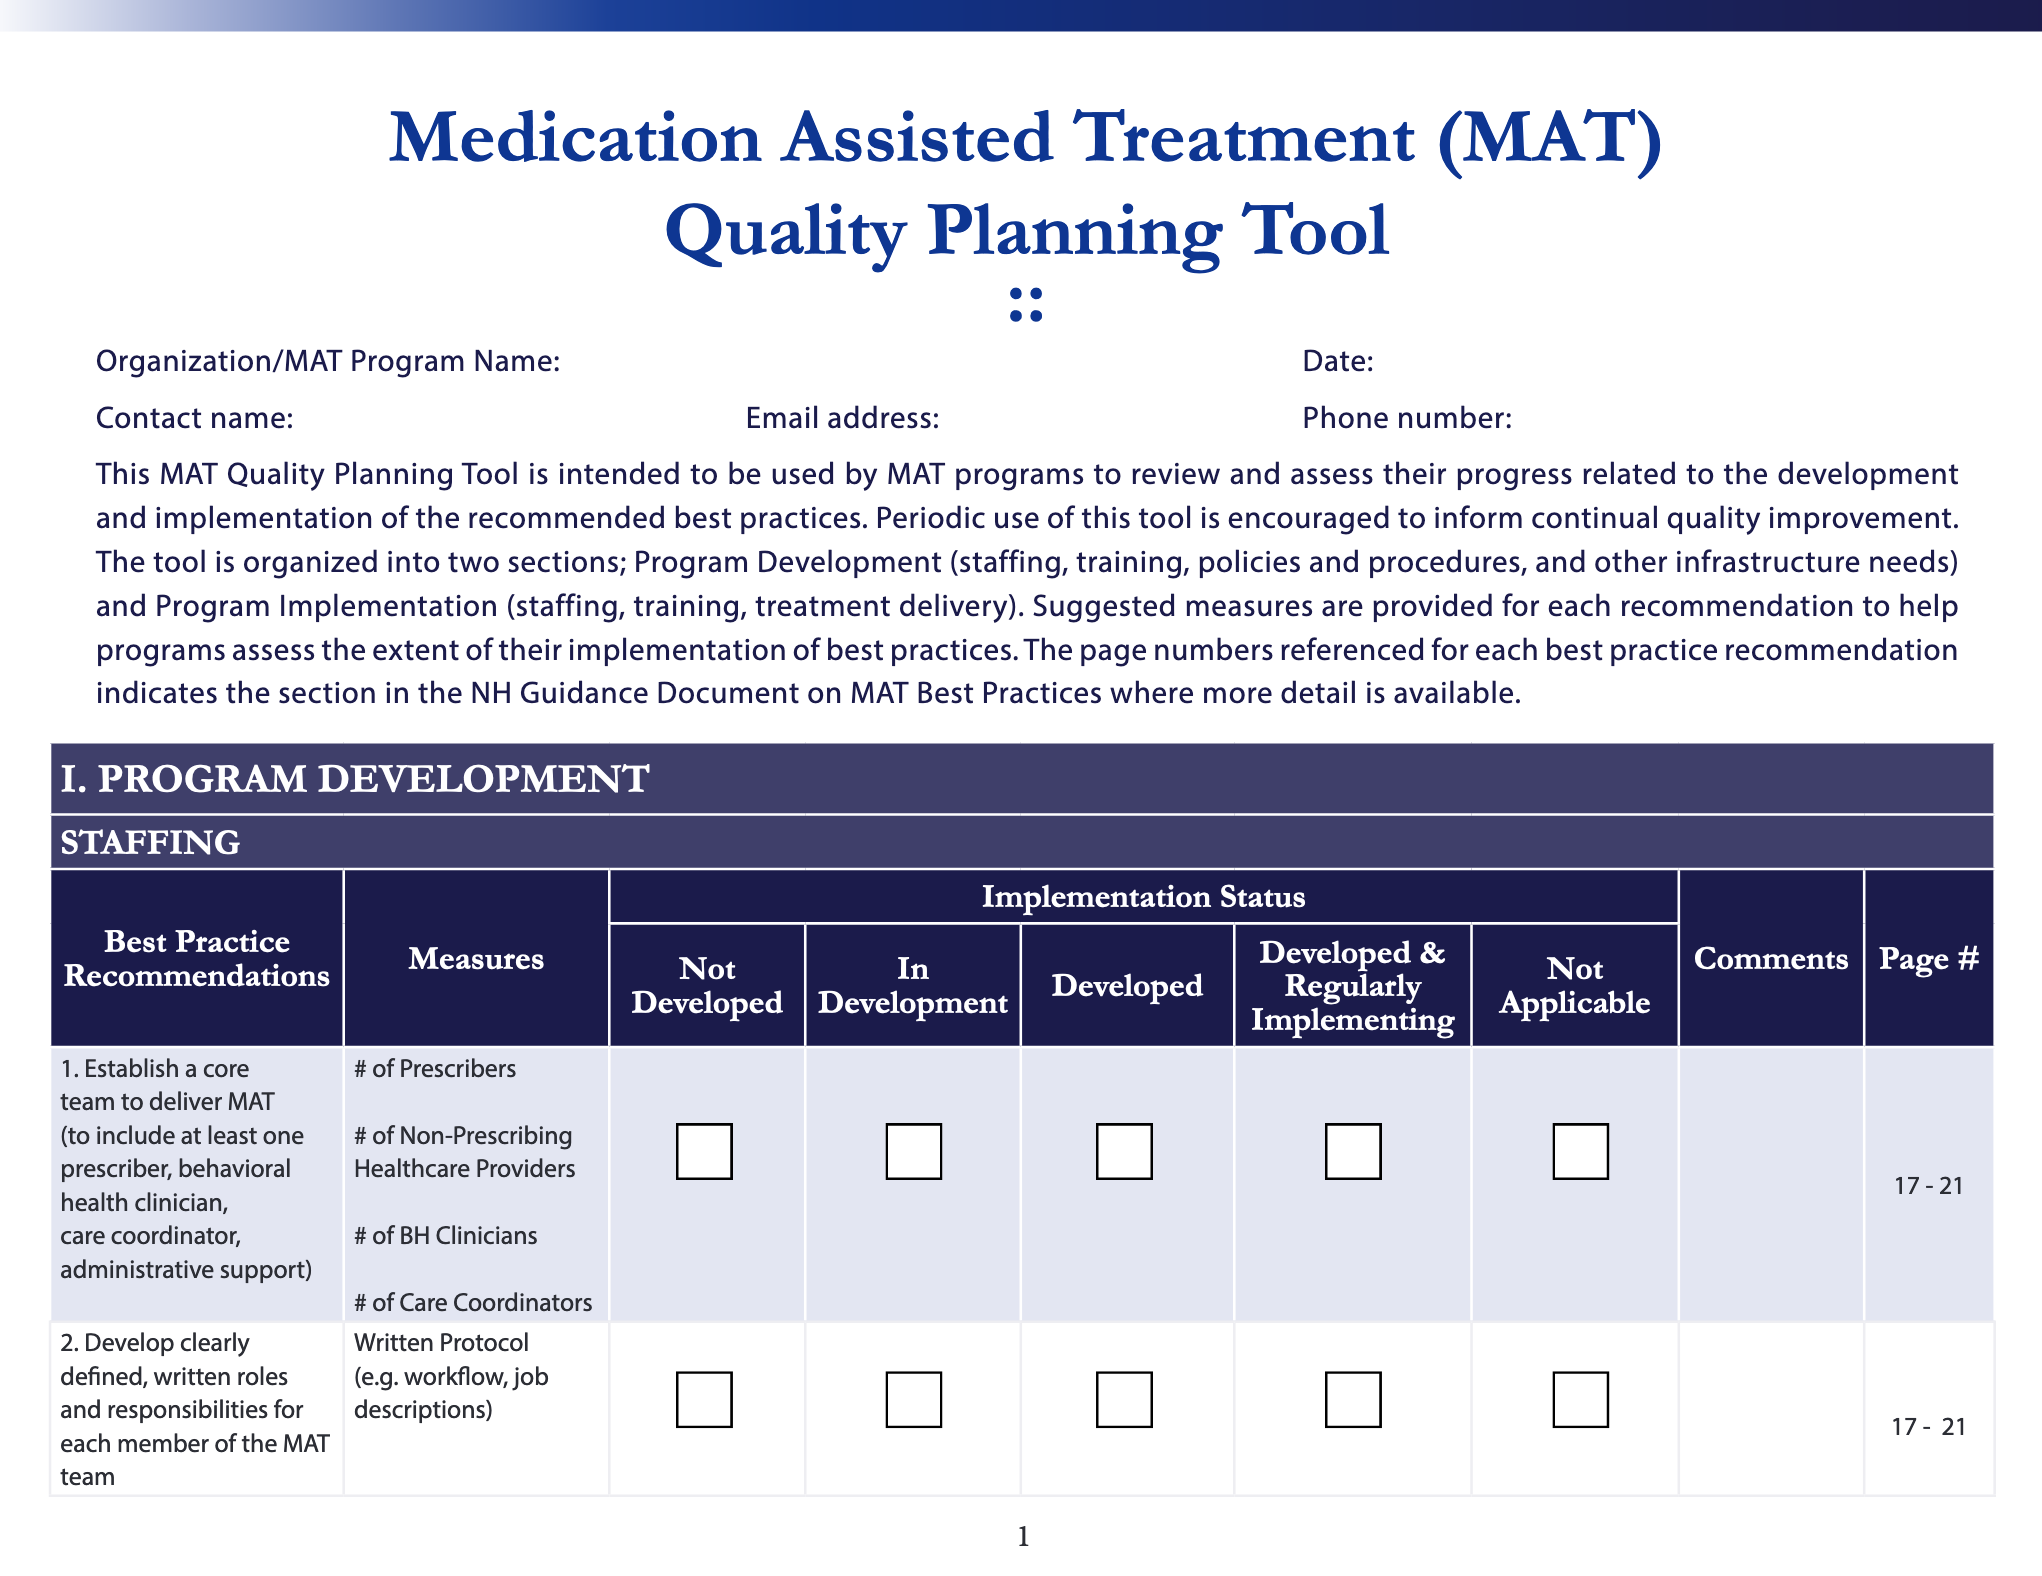 Download MAT Quality Planning Tool in PDF format.